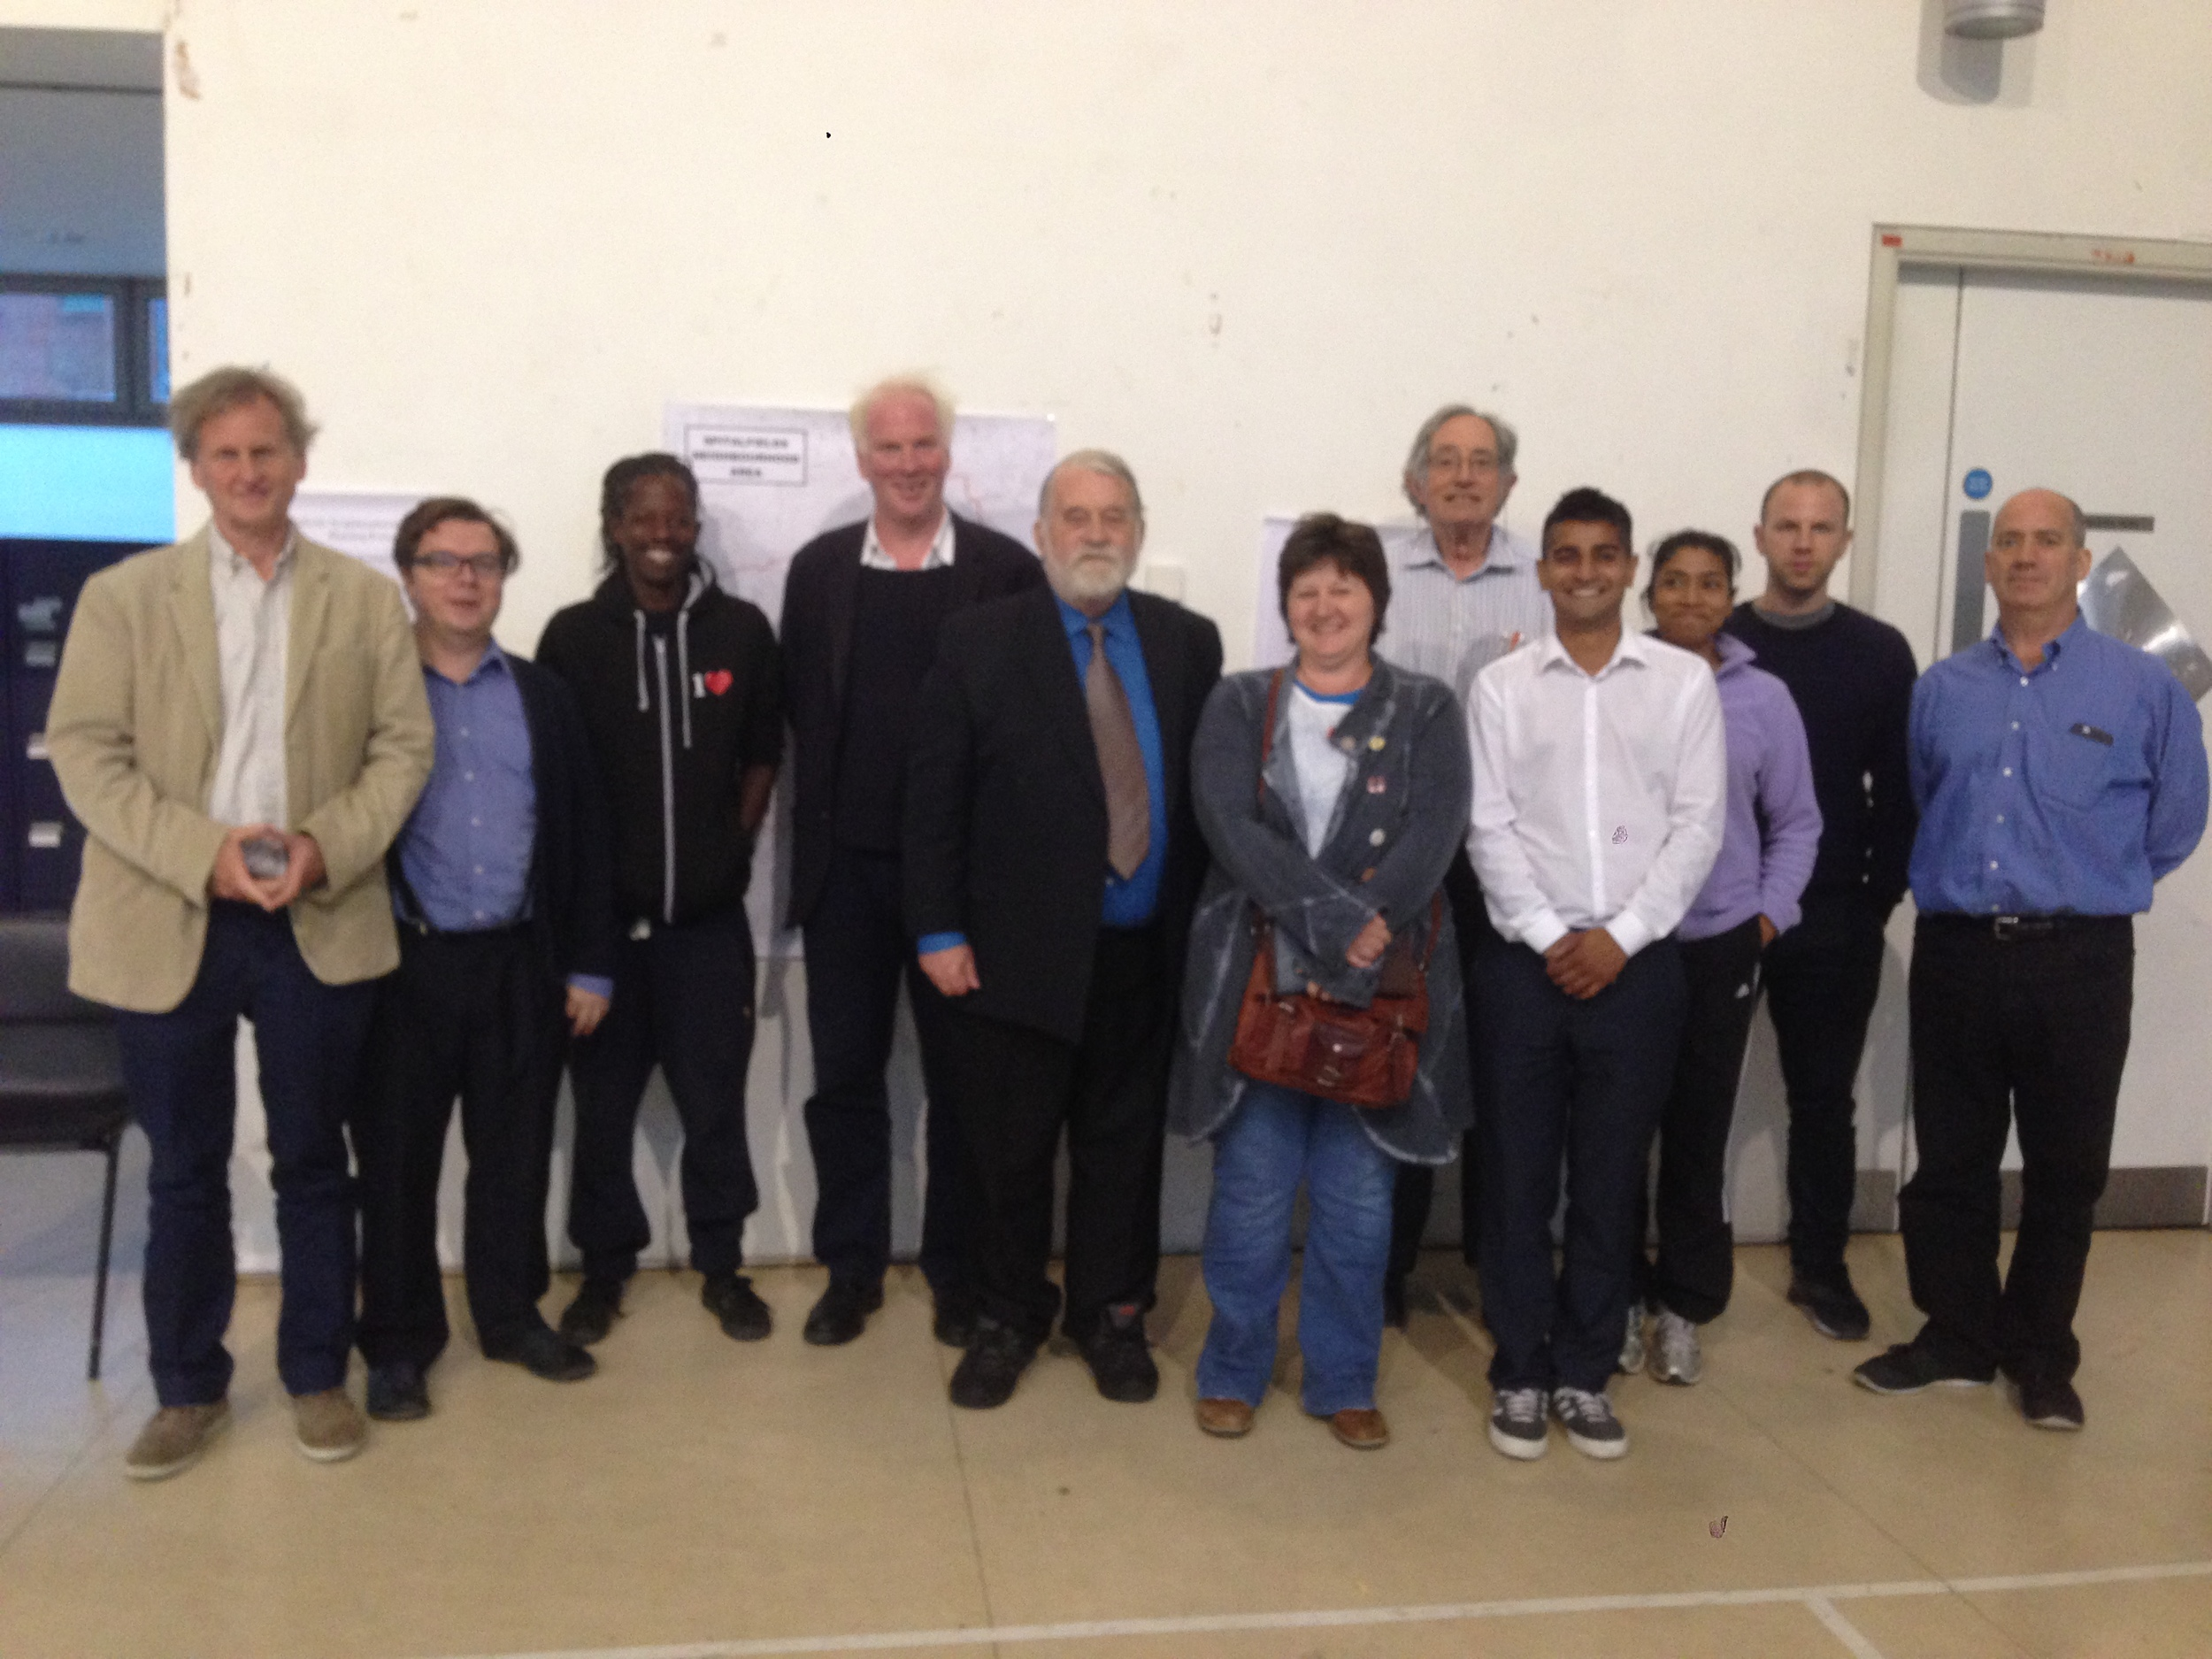 The members of the 2015-2016 Committee elected at the AGM on 27 July.